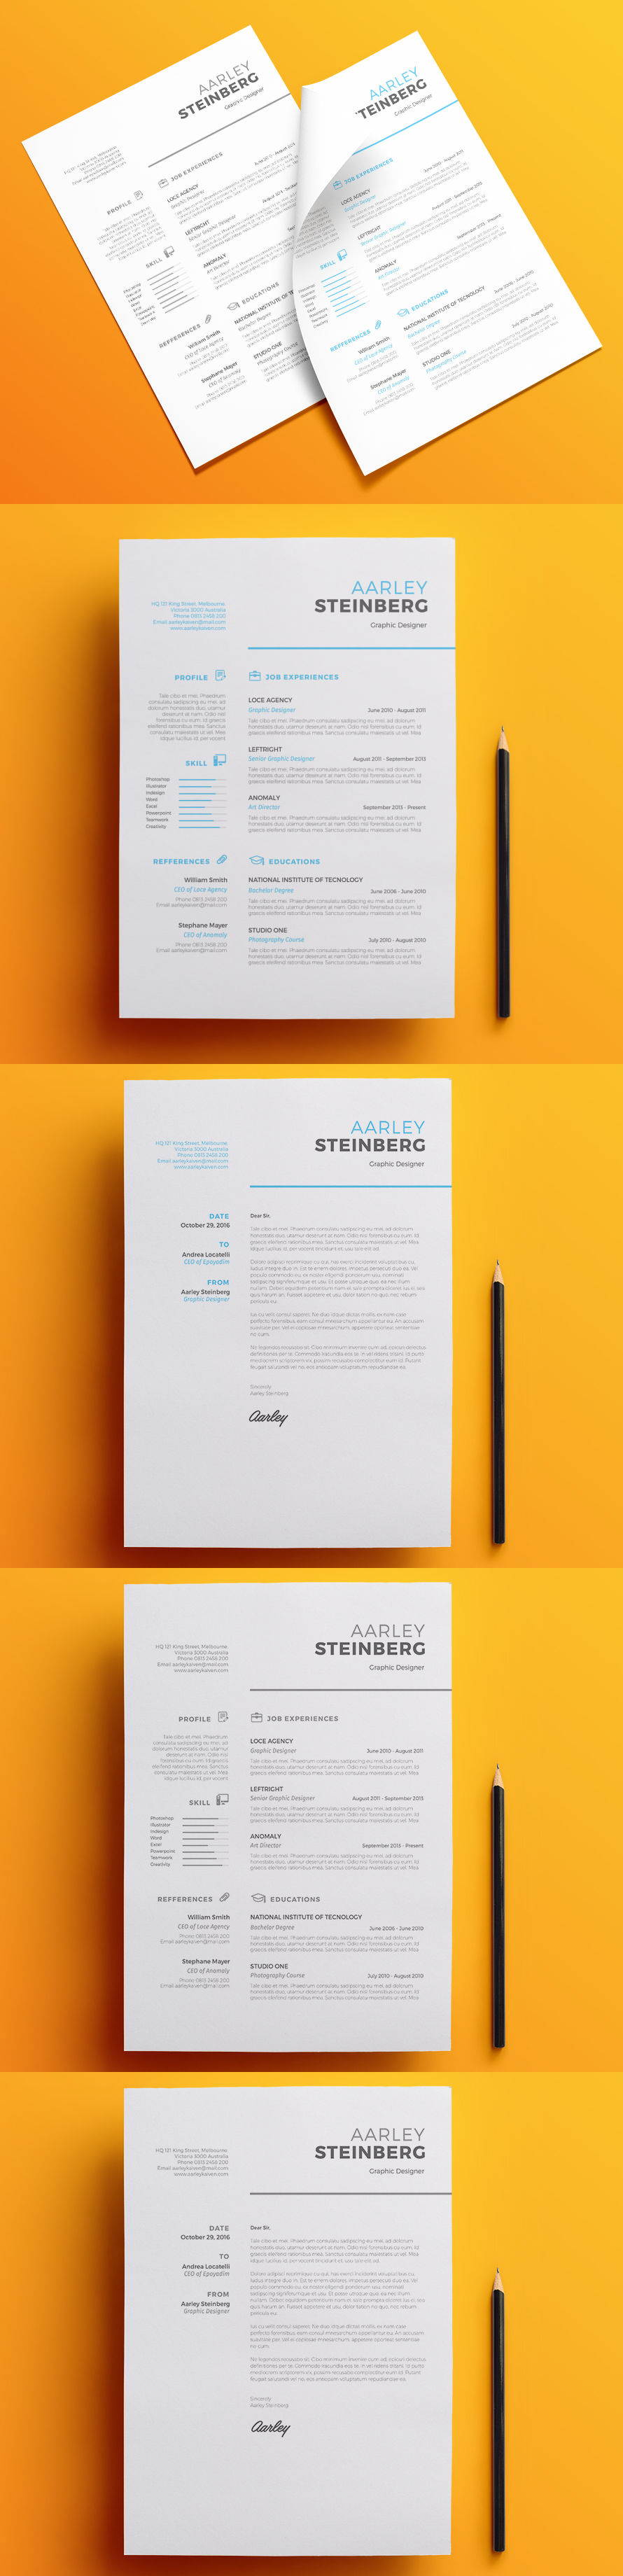 Clean and Professional Resume Set - Template PSD, MS Word docx & doc ...